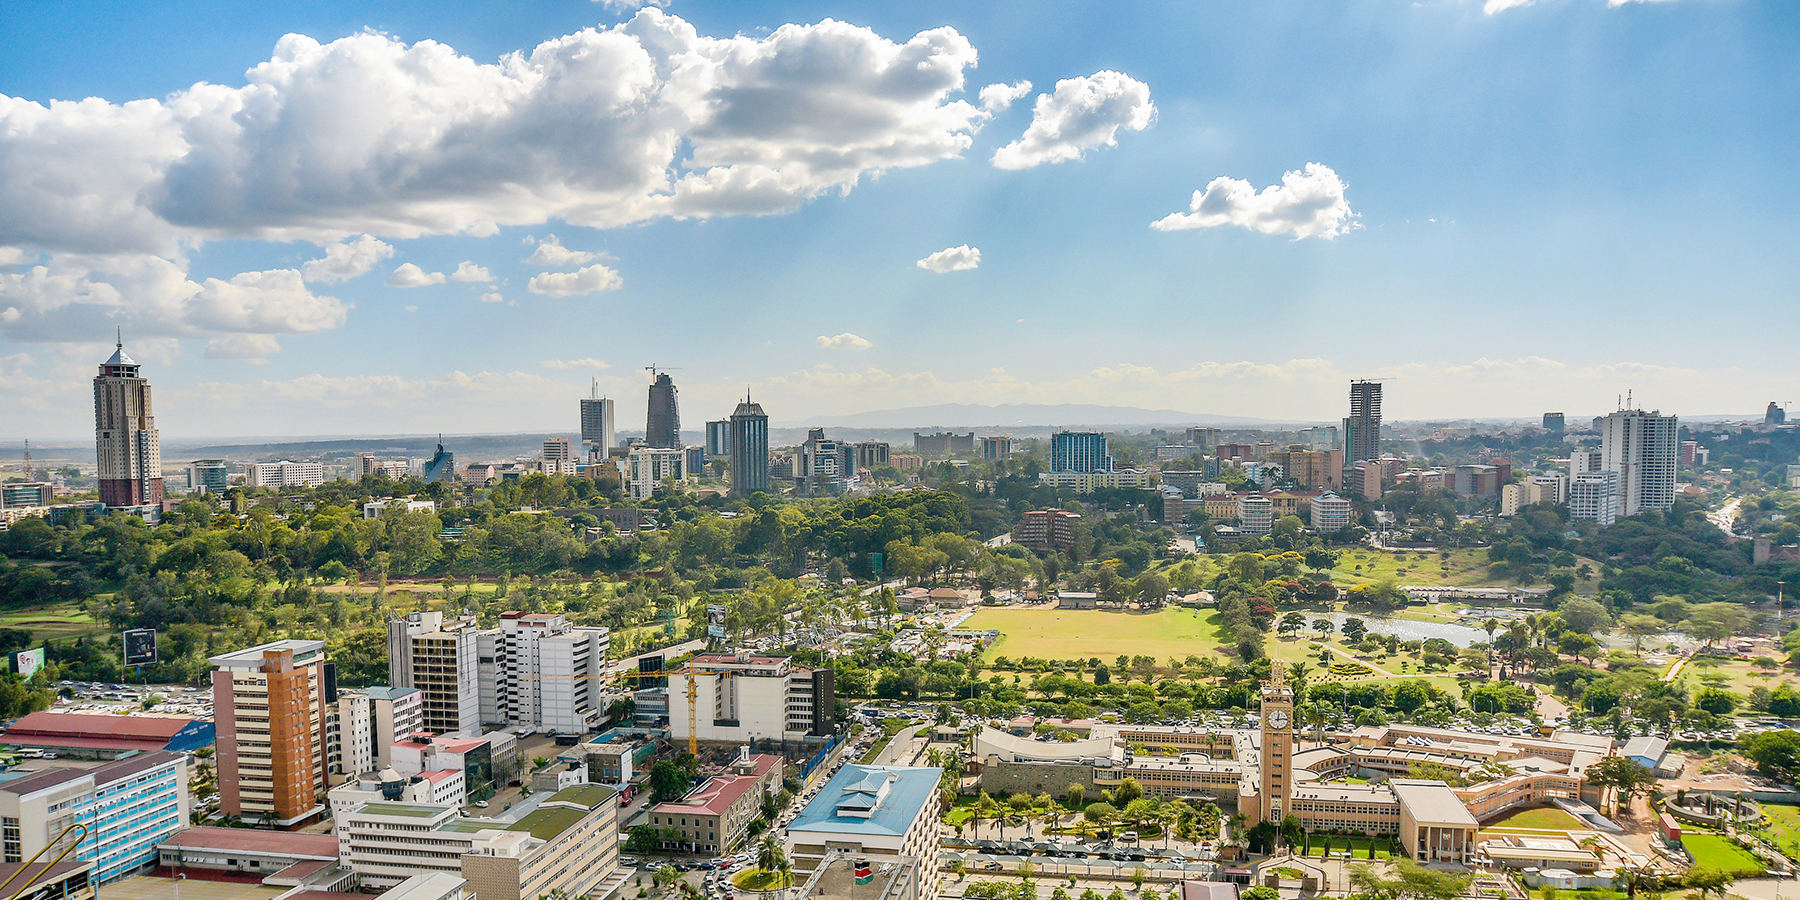 Make a city smart: Visionary urban development project outside of Nairobi